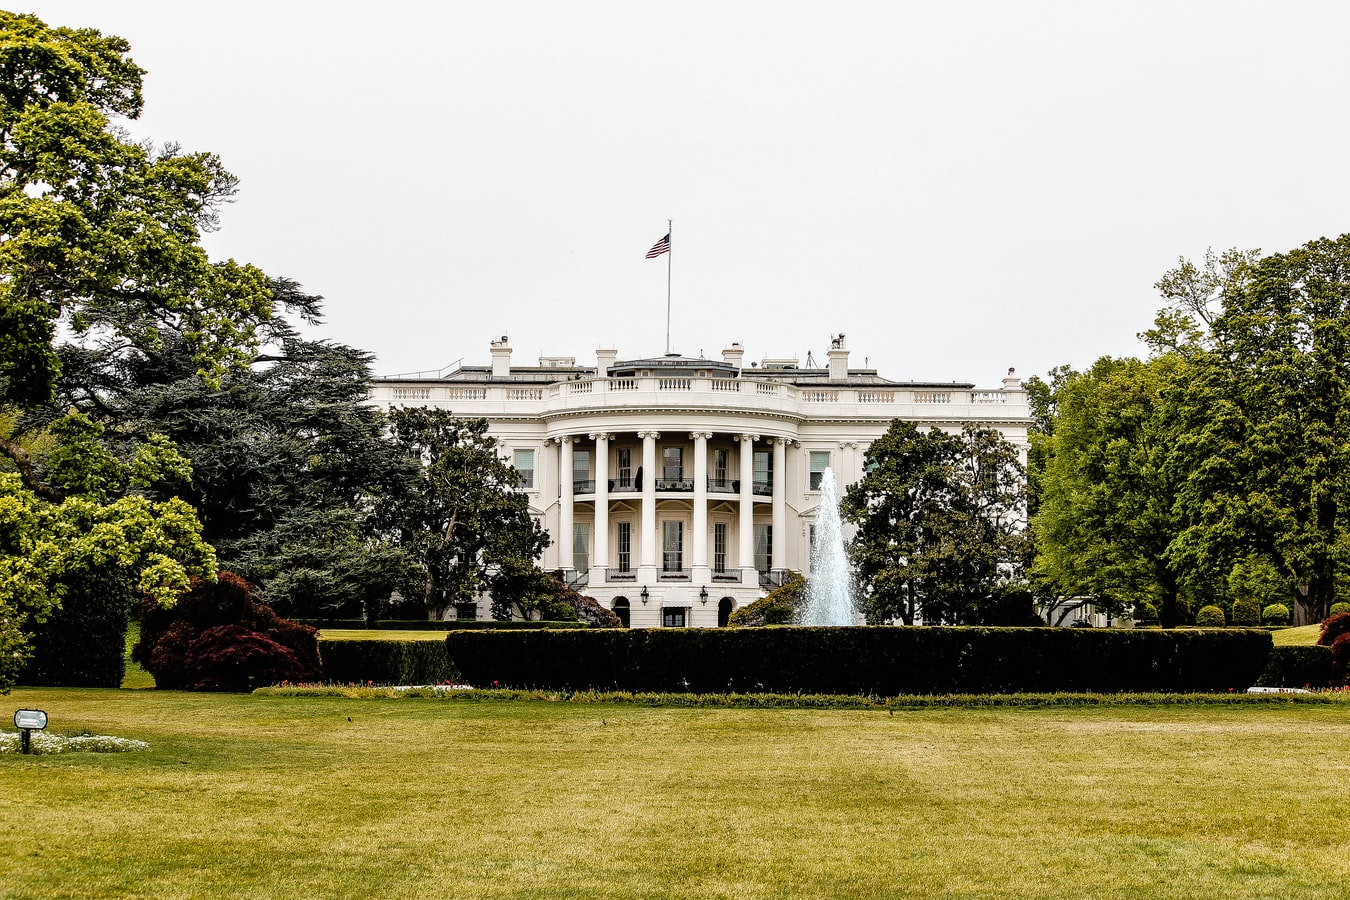 www.miragenews.com: Readout of White House's Listening Session with Asian American and Pacific Islander Leaders on Rising Hate Crimes and Incidents